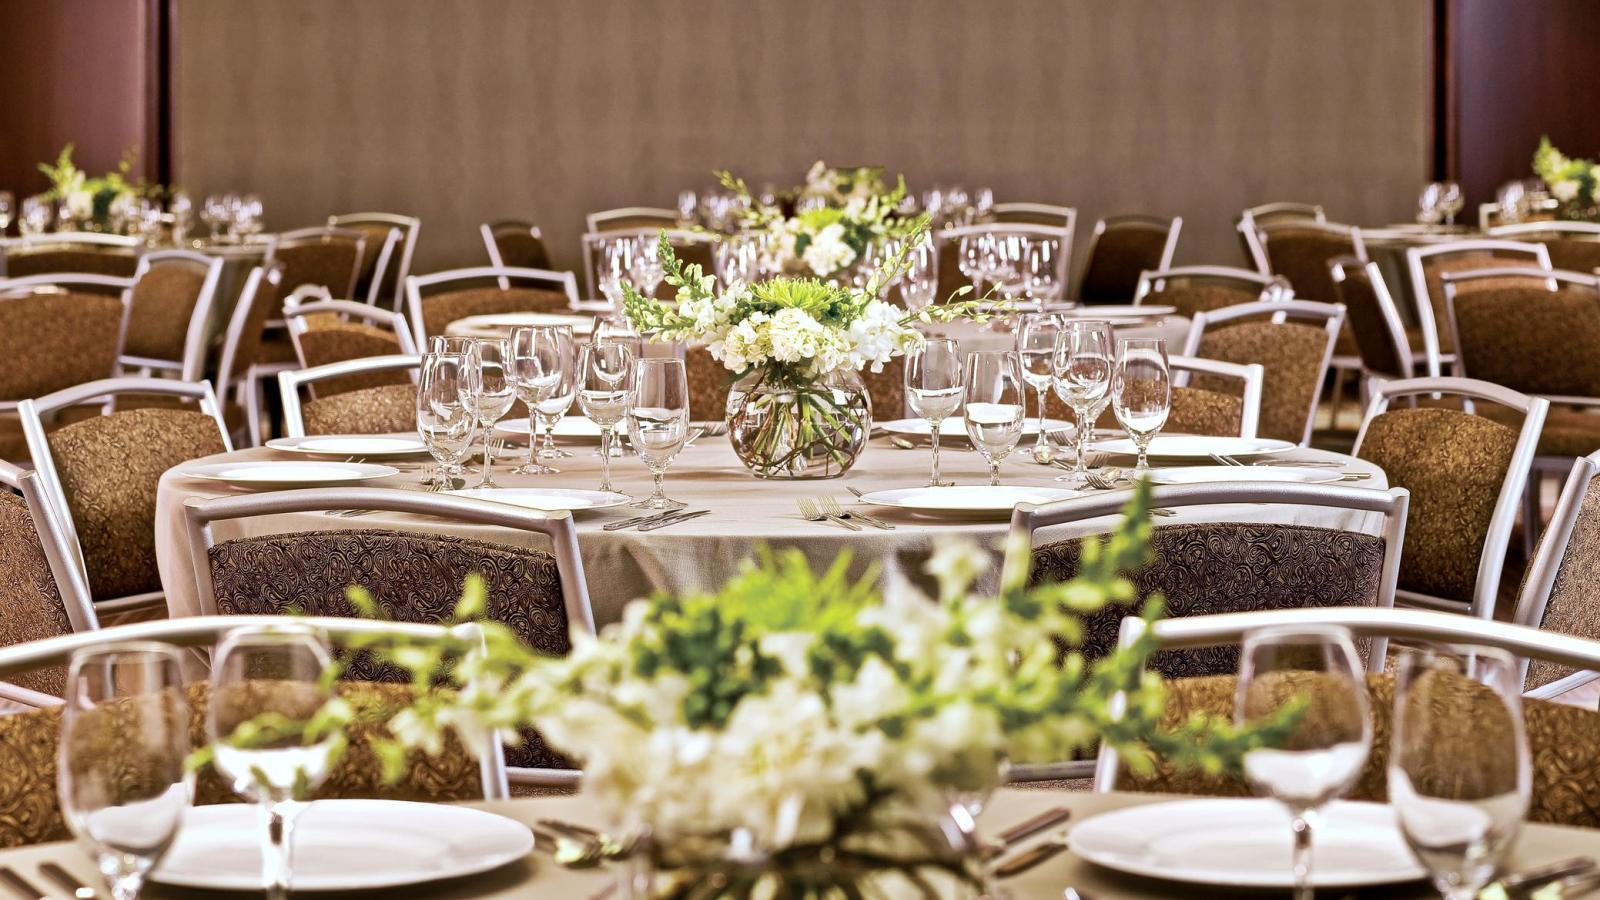 Wedding venues in memphis tn the westin memphis beale street the westin memphis beale street memphis wedding venue junglespirit Image collections